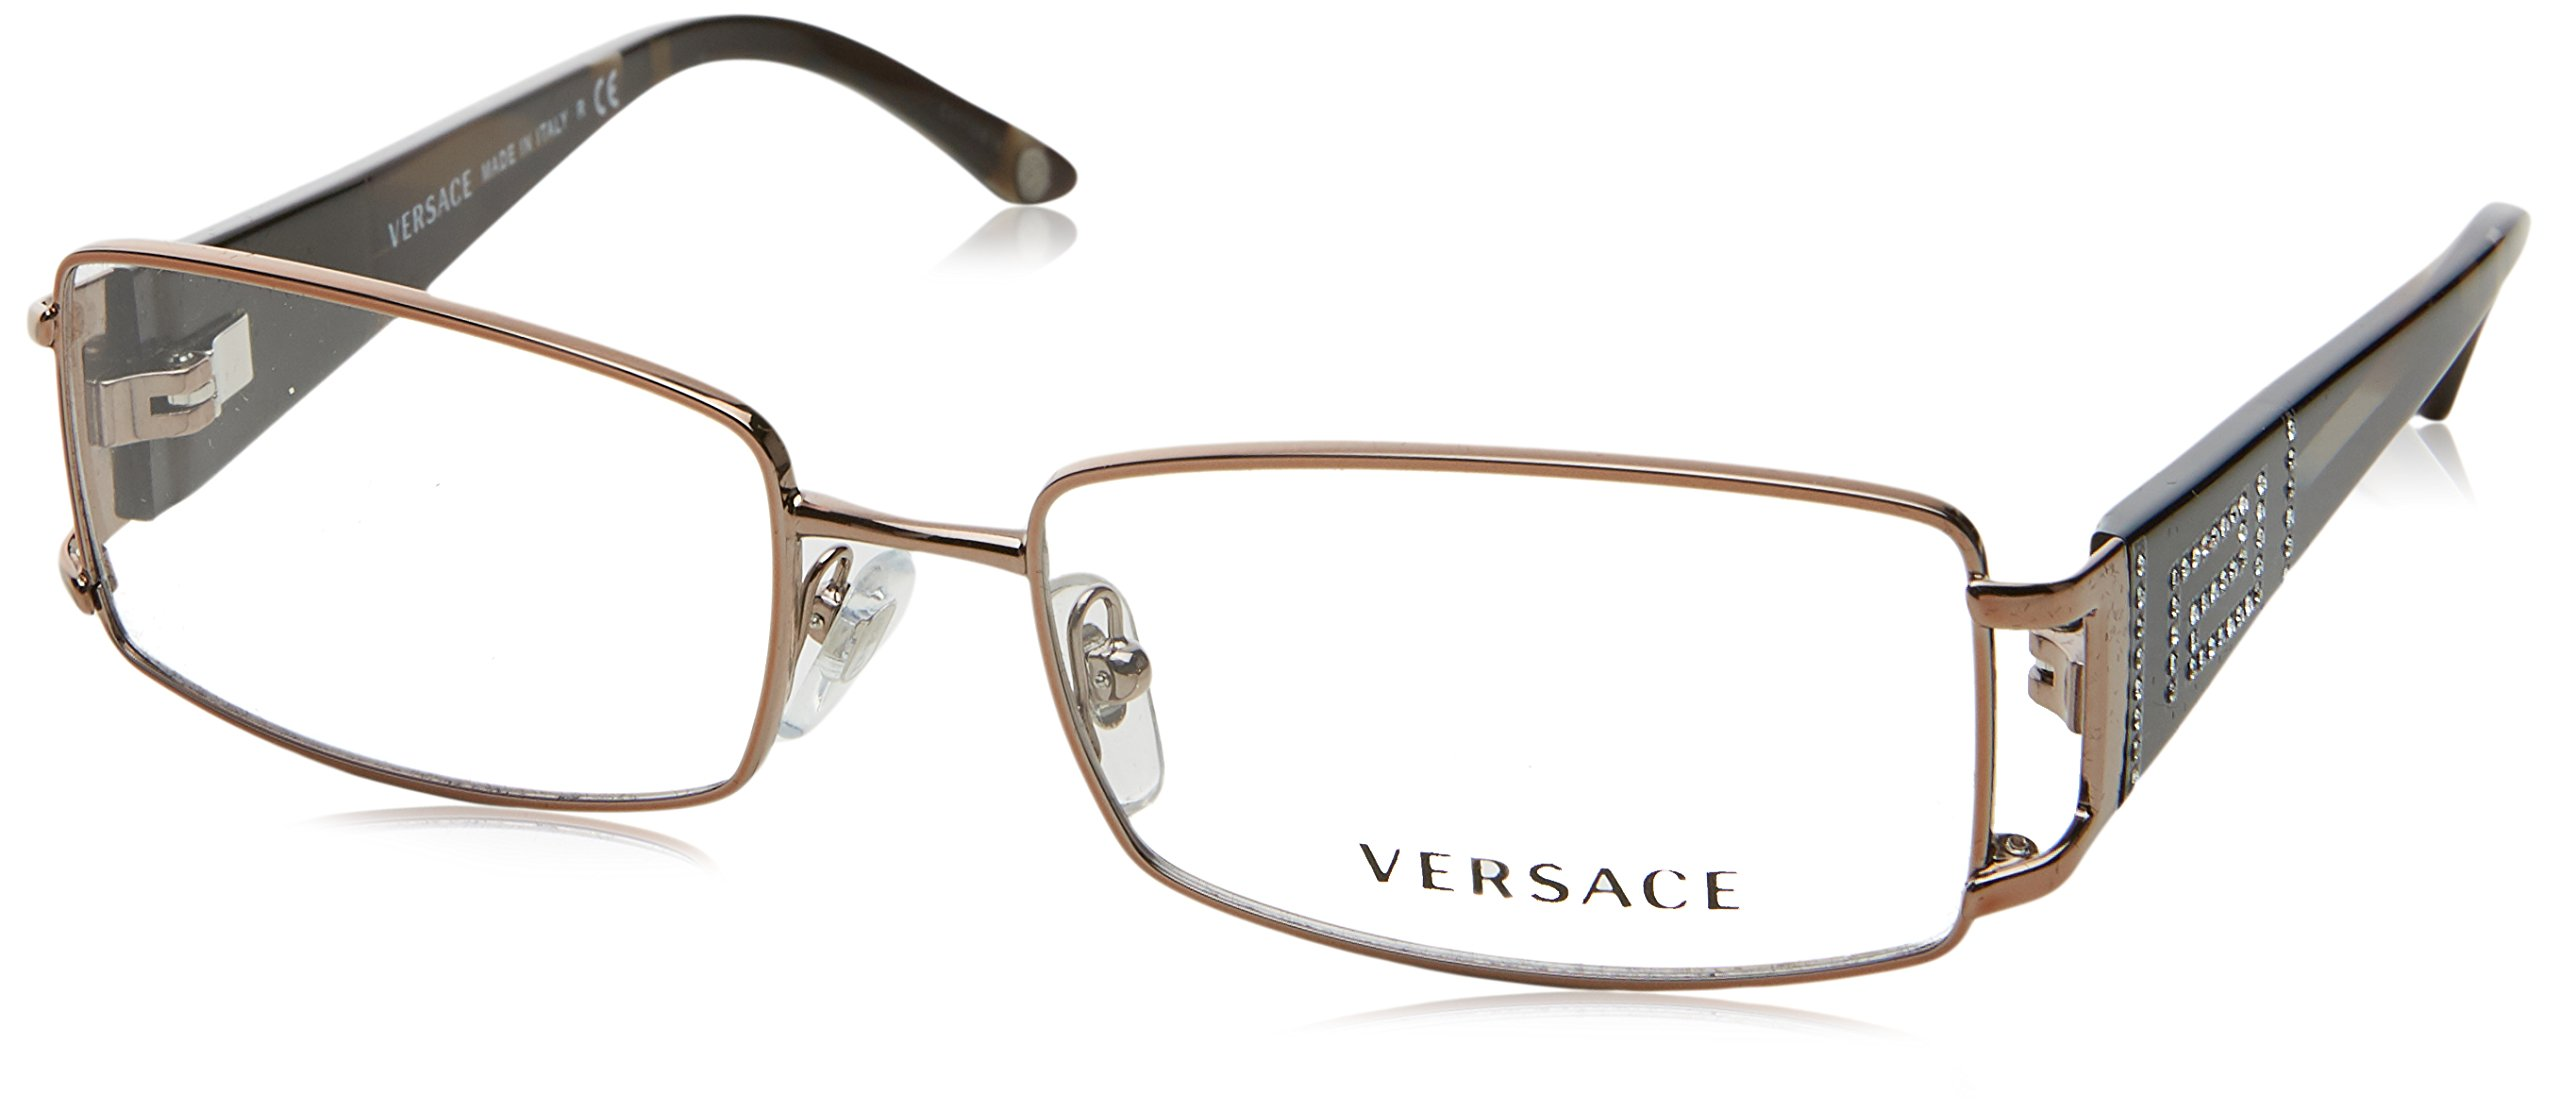 759421d19c Amazon.com  Versace VE1163B Eyeglass Frames 1013-5216 - Brown  VE1163B-1013-52  Shoes